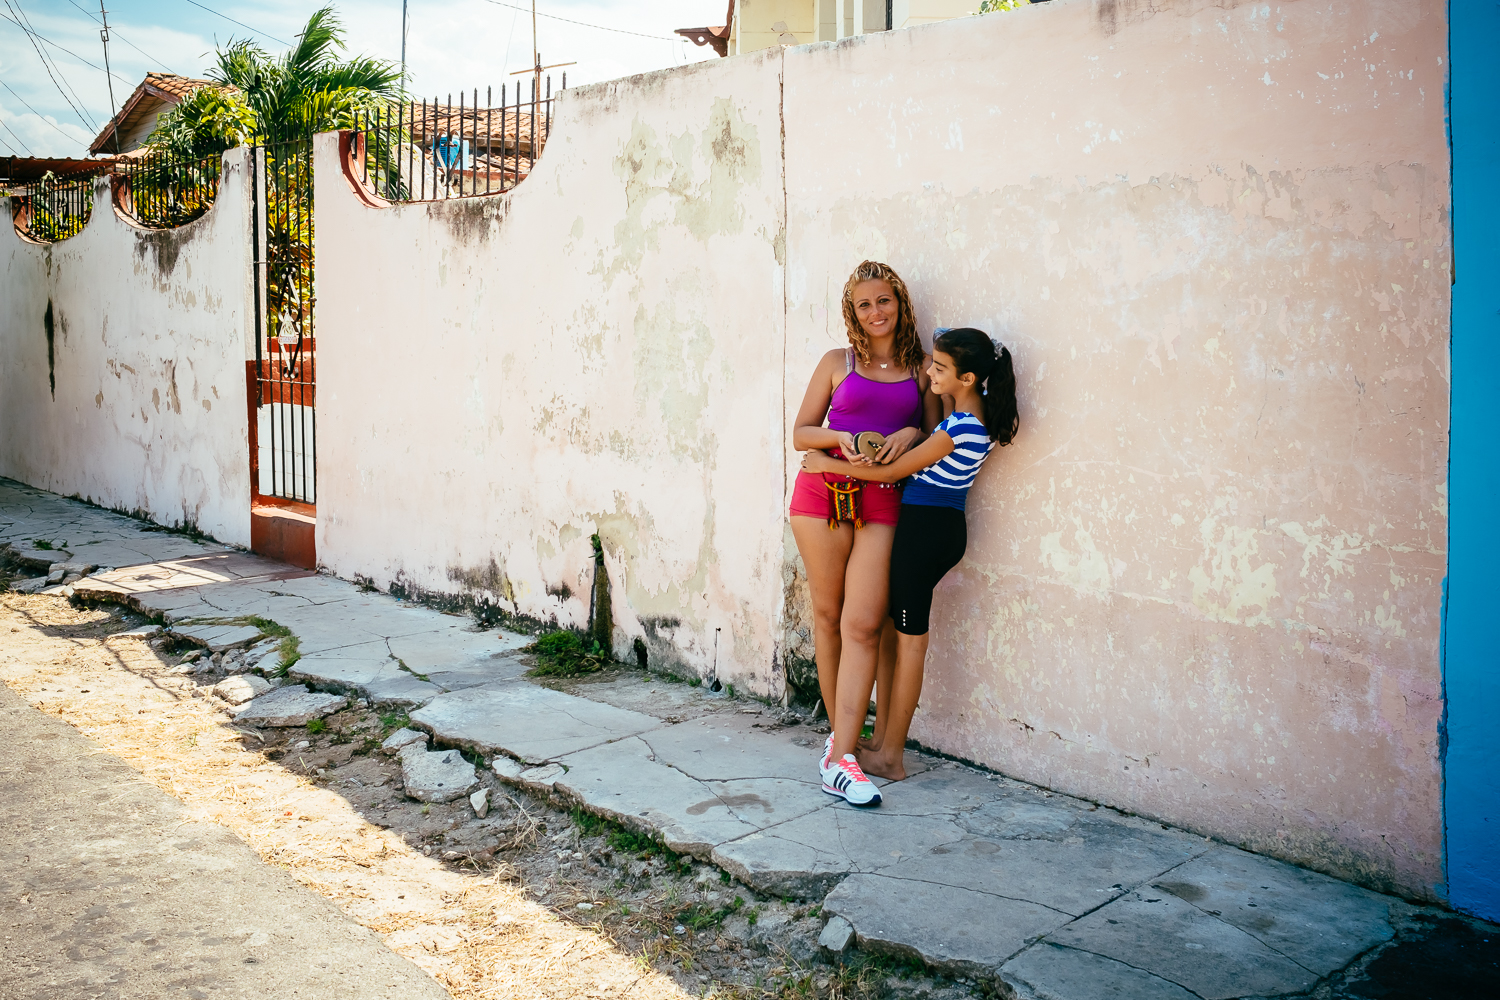 Street Portrait of two Cuban girls in Varadero, Cuba 2015.